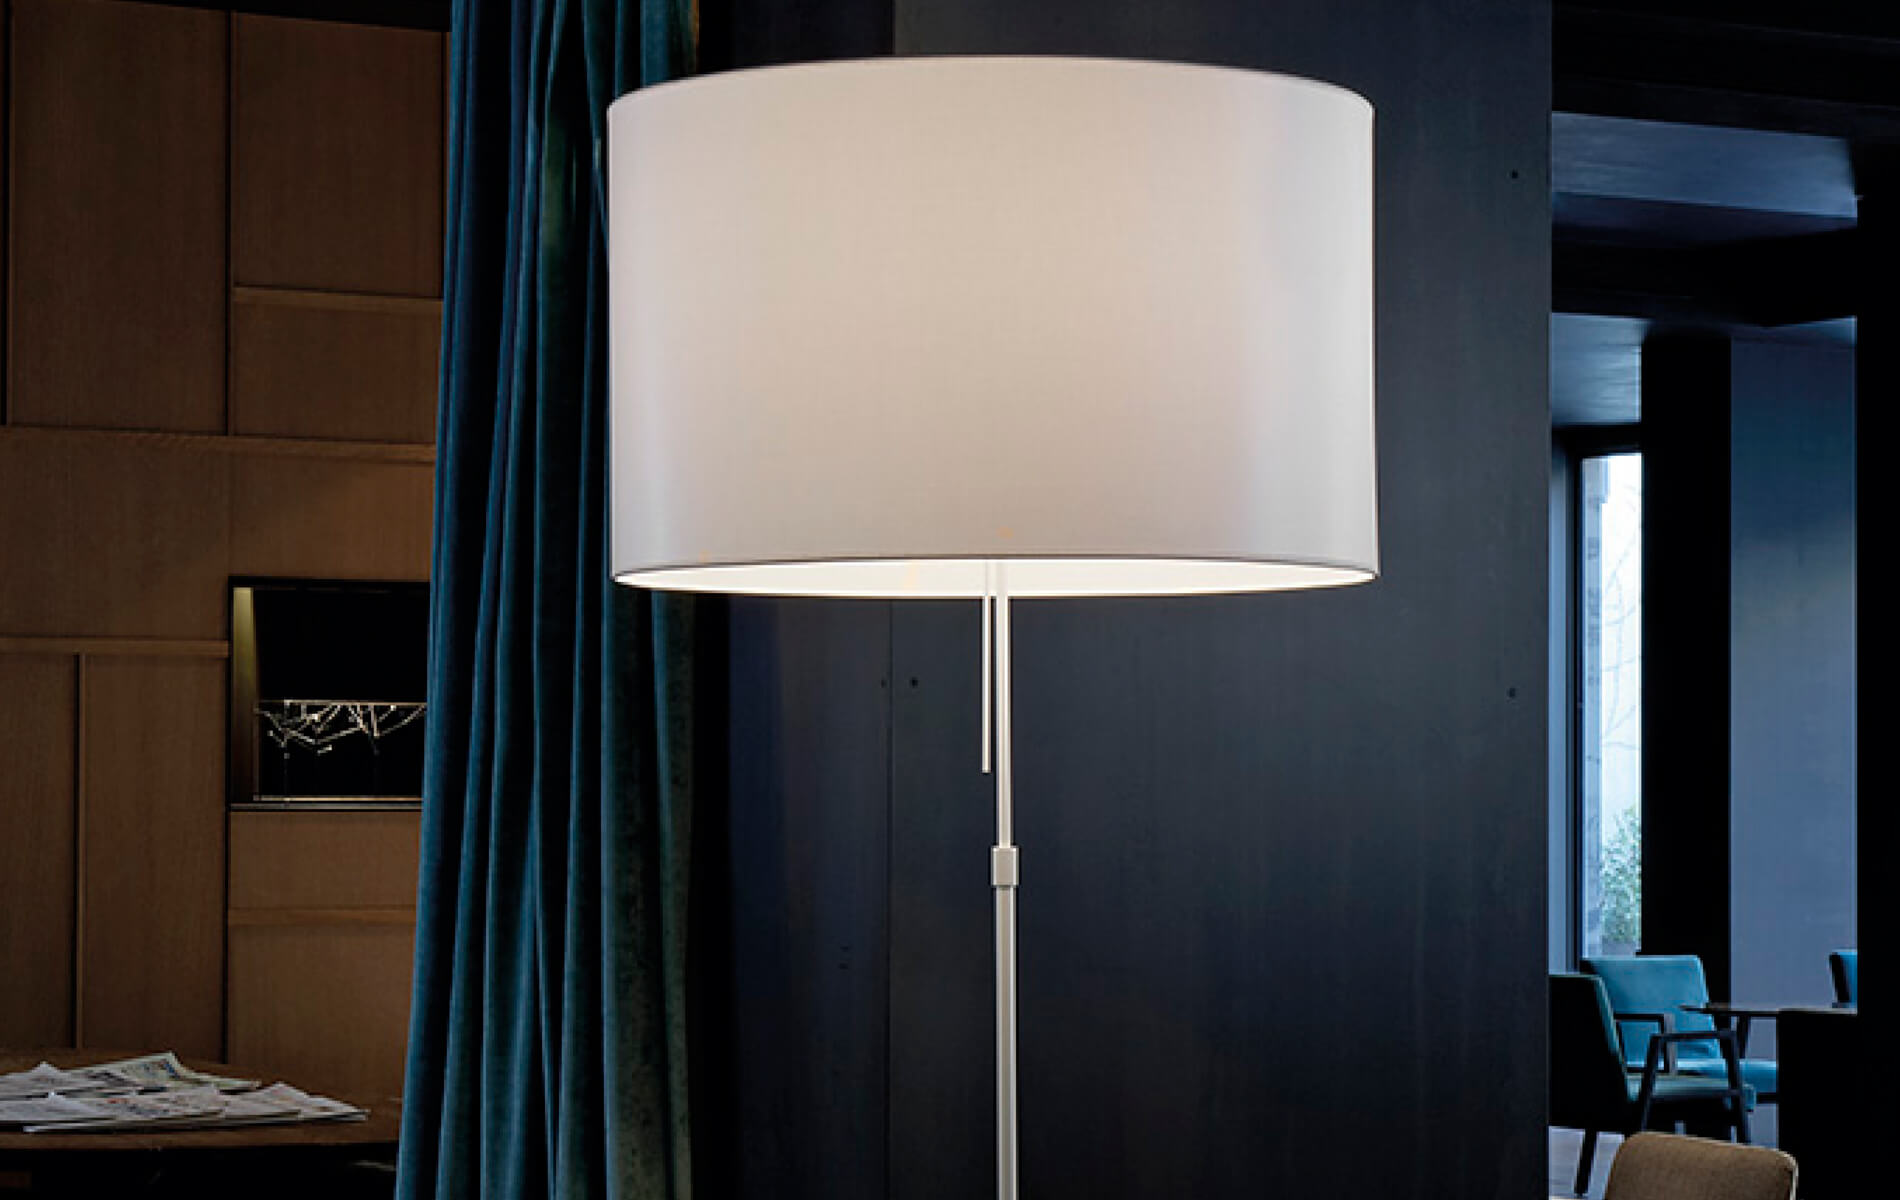 More information of Carpyen SIGNORA floor lamp